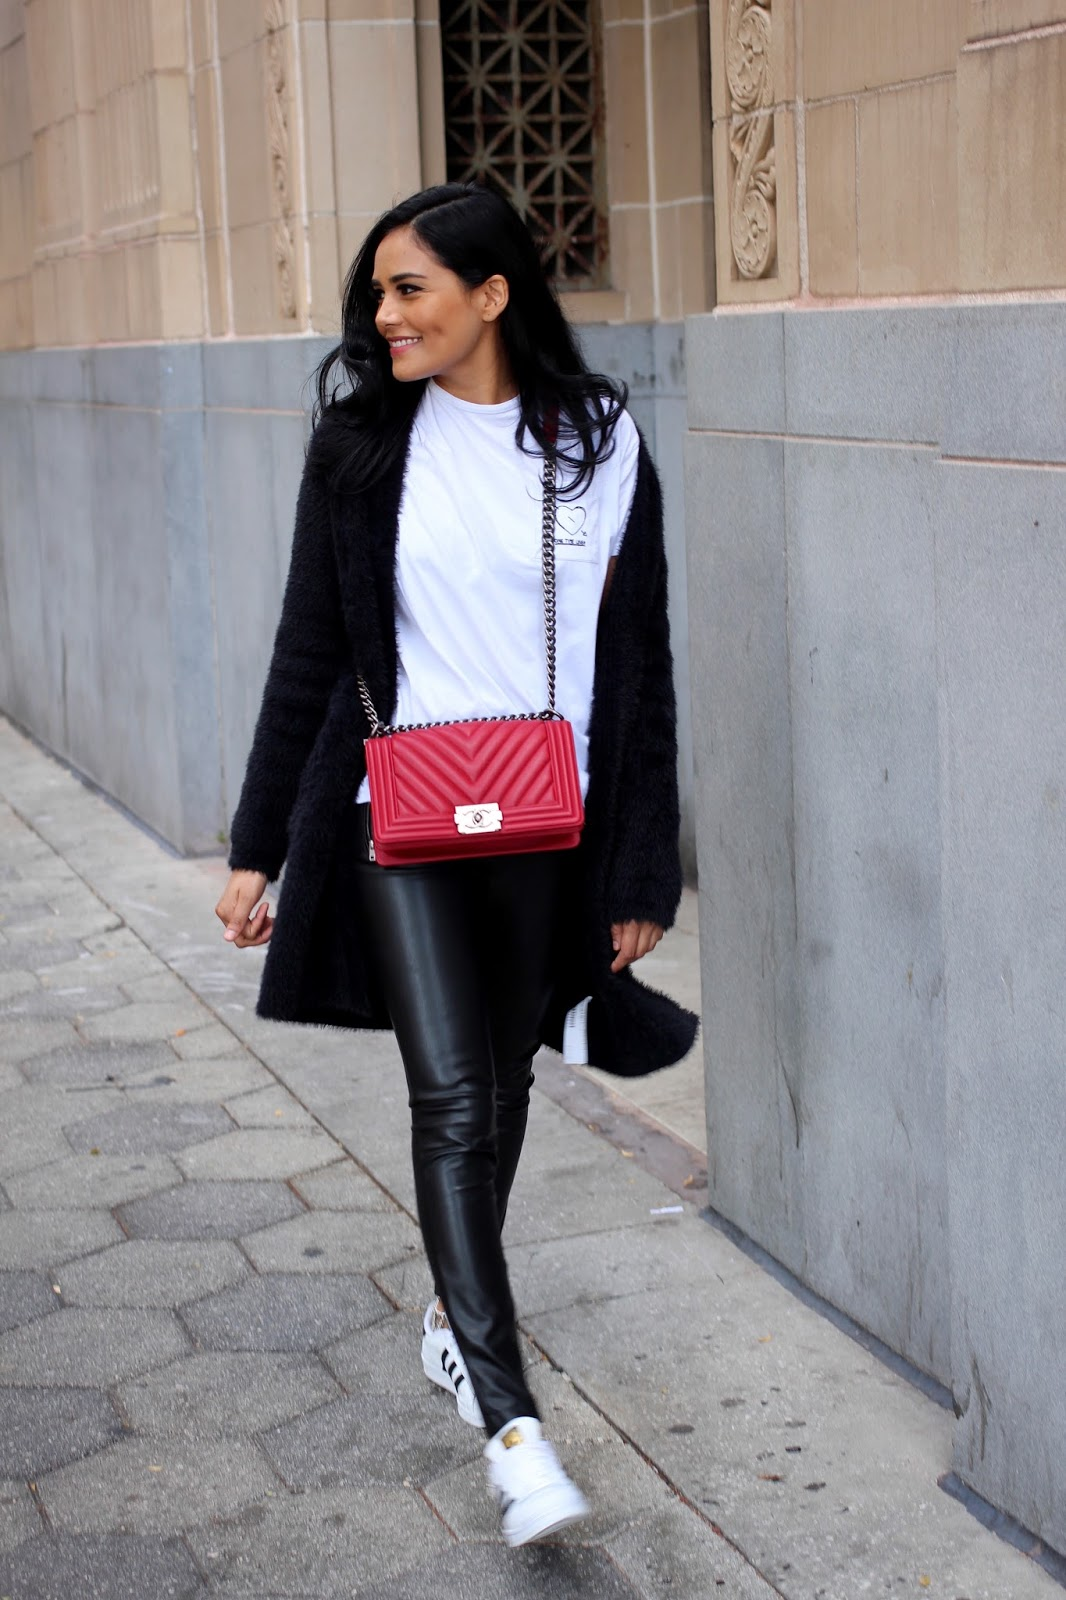 A Parisian In America By Alpa R Orlando Fashion Blogger Casual Streetstyle